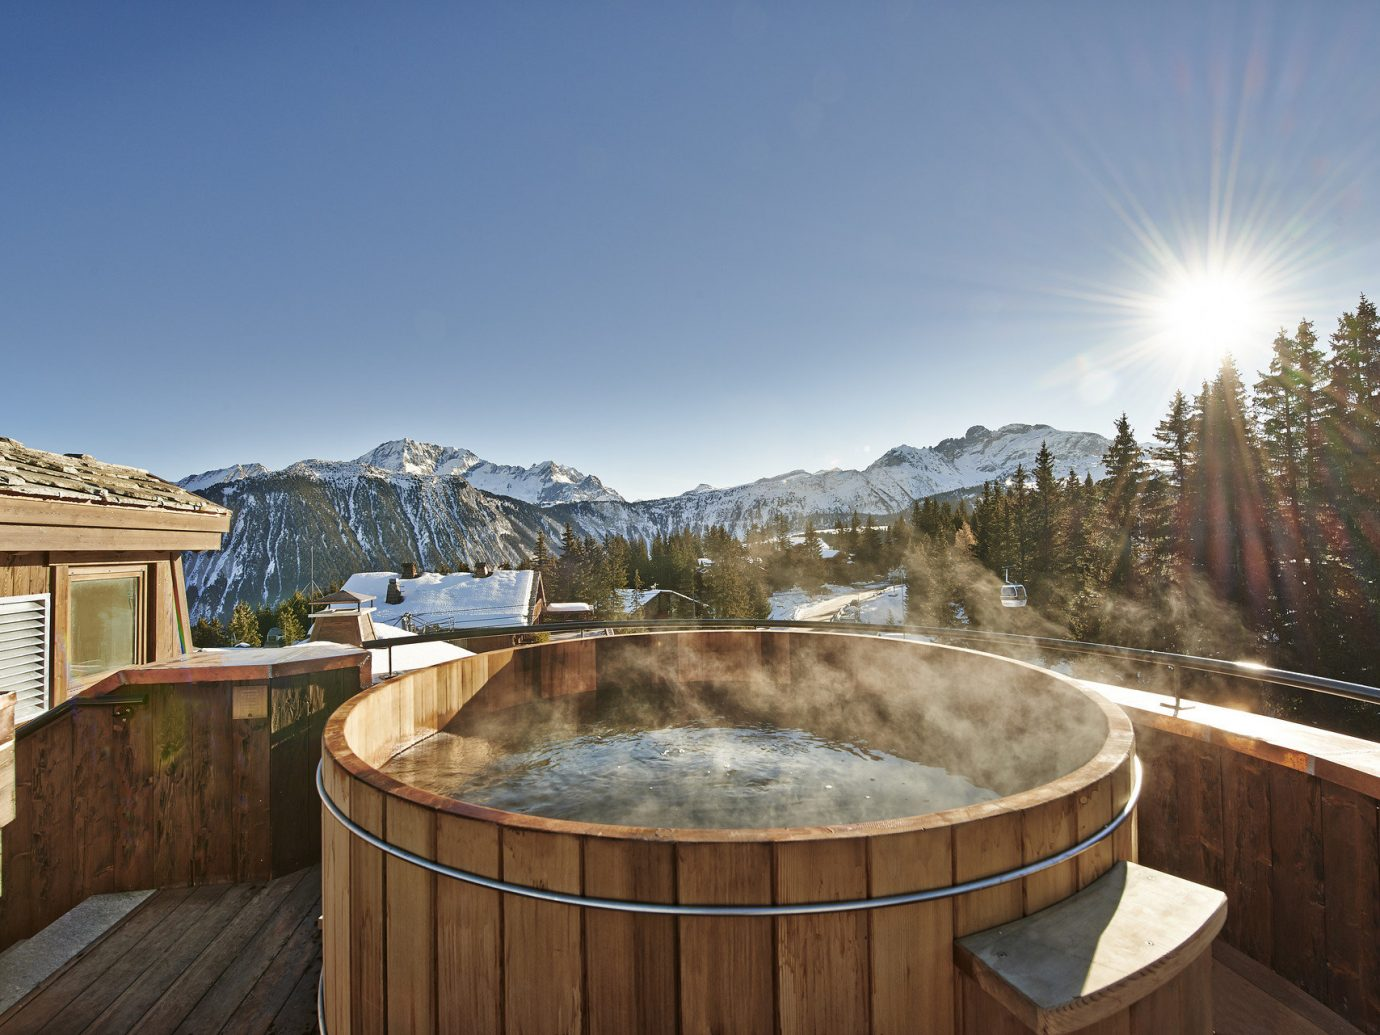 Balcony Hot tub Hot tub/Jacuzzi Hotels isolation jacuzzi Luxury Luxury Travel mountain view Mountains open-air Patio rays remote Rustic snow snow capped Mountains sunlight Terrace trees view Winter sky outdoor swimming pool estate backyard